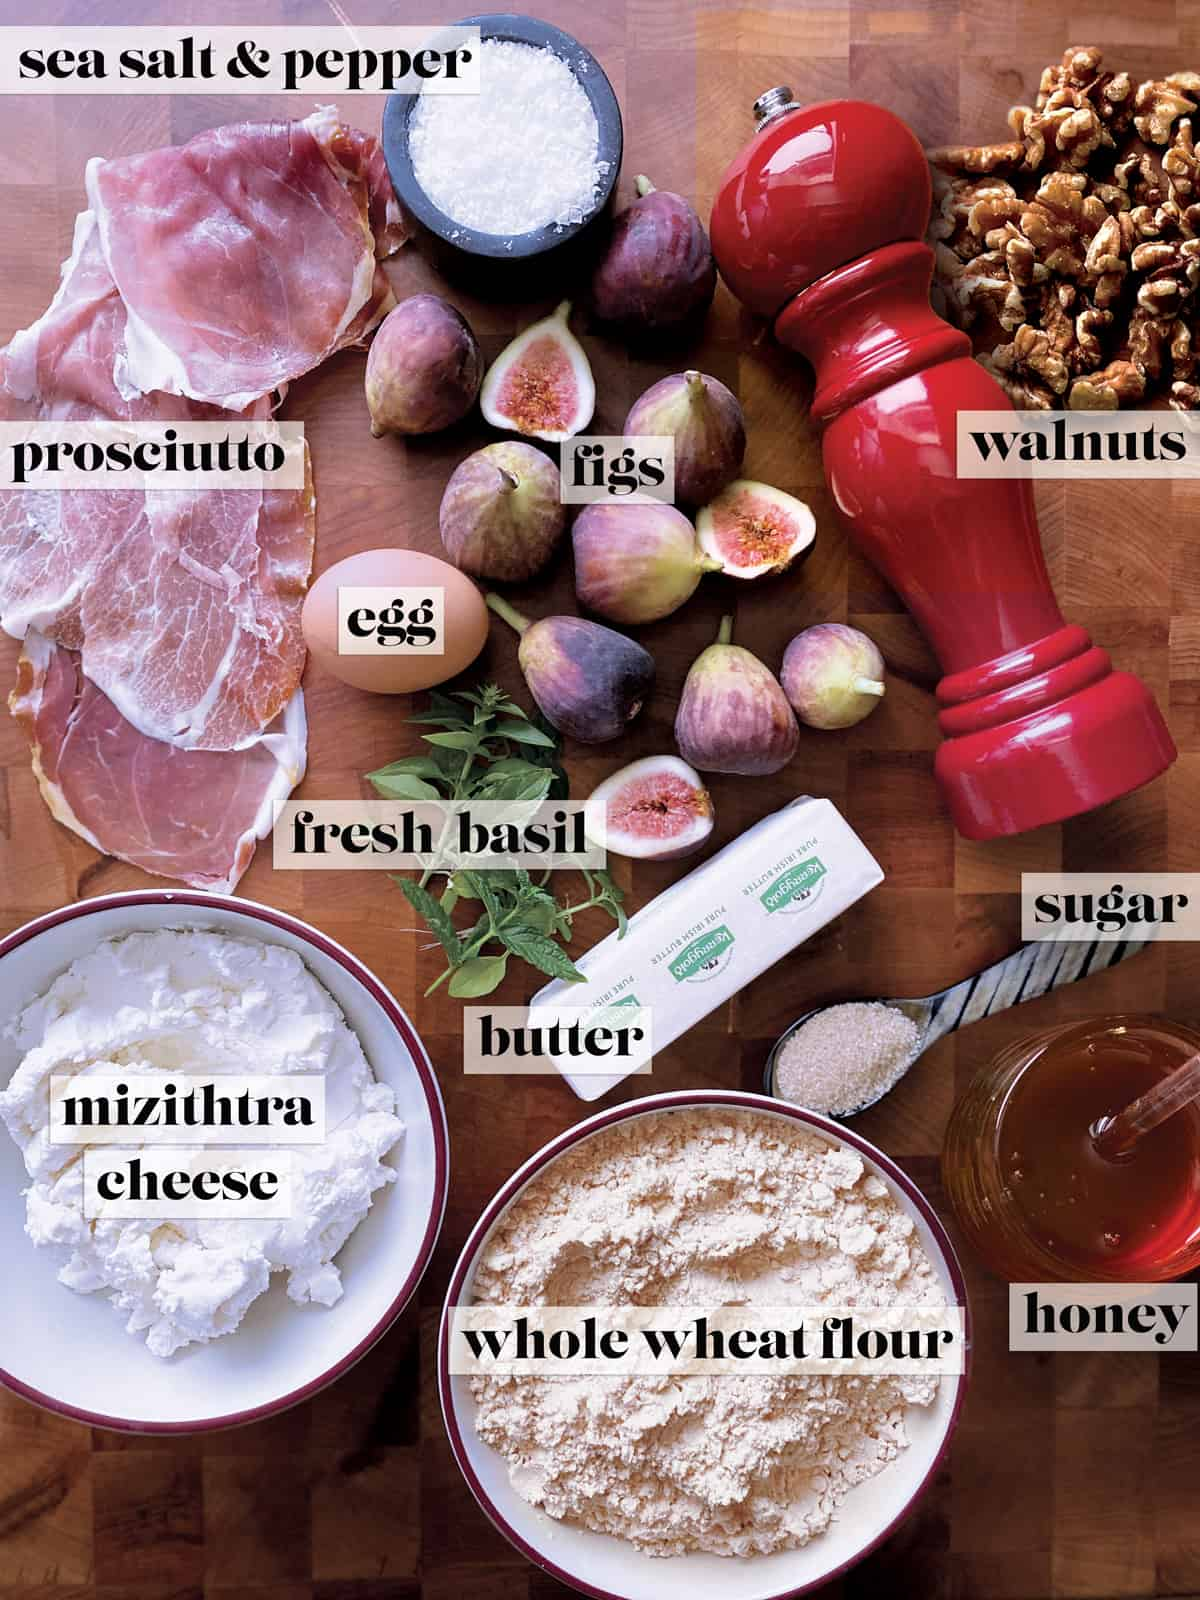 Slices of prosciutto, an egg, figs, a container with salt, a pepper mill, some walnuts, fresh basil, a spoon with sugar, a stick of butter, a bowl with cheese, a bowl with flour and a pot of honey.